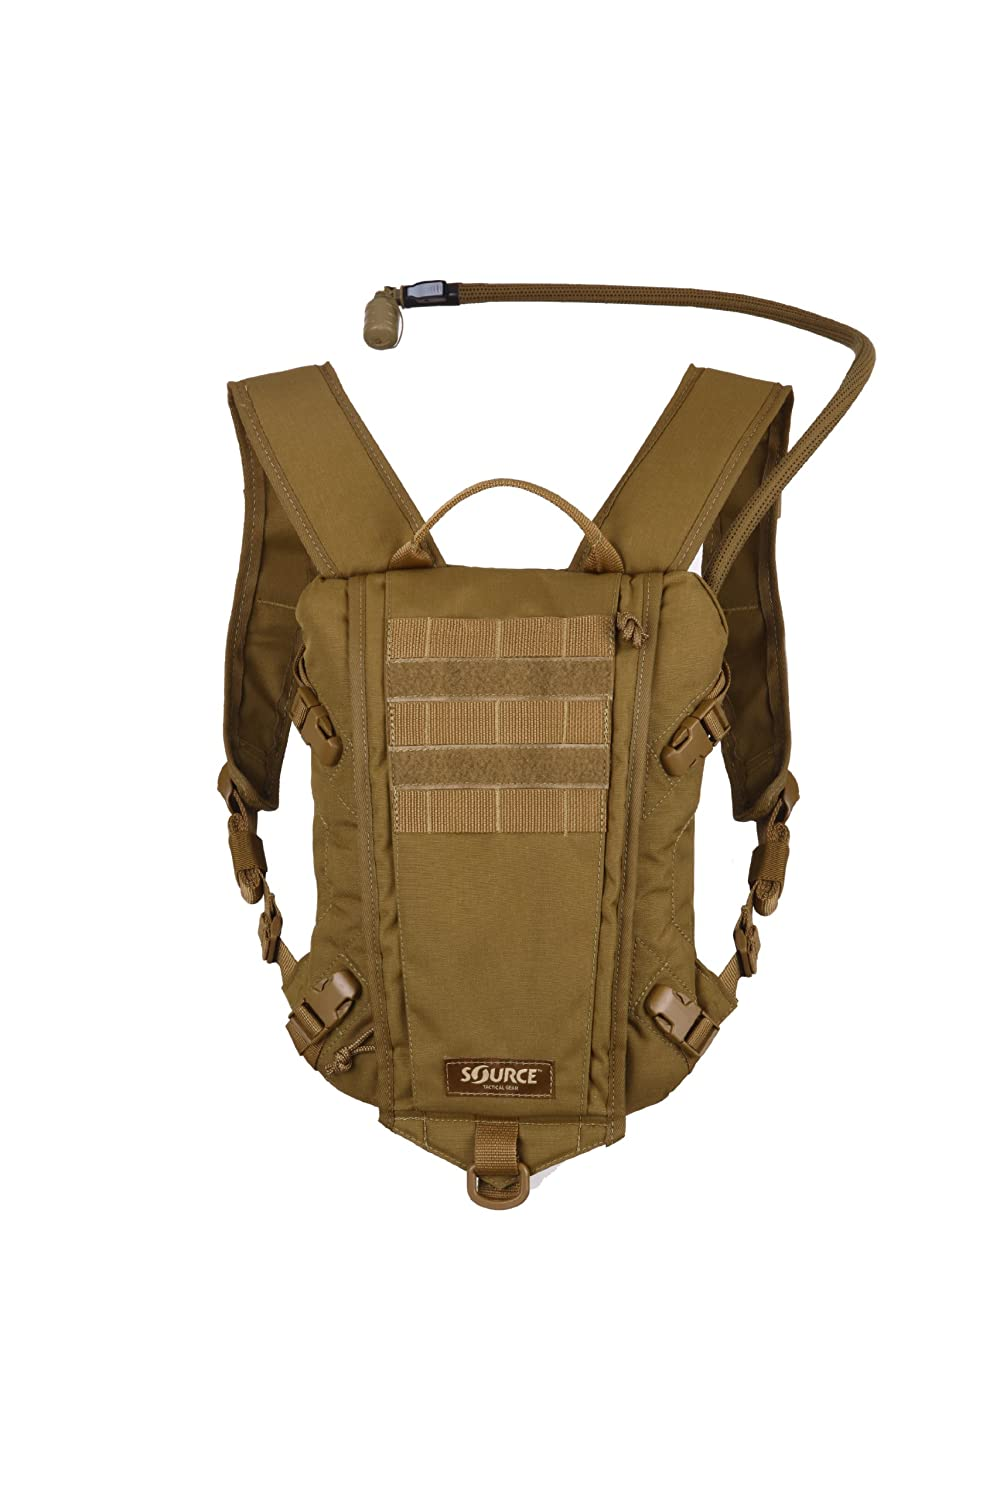 Source Tactical Gear Rider Low Profile Hydration System Coyote, 3-litres